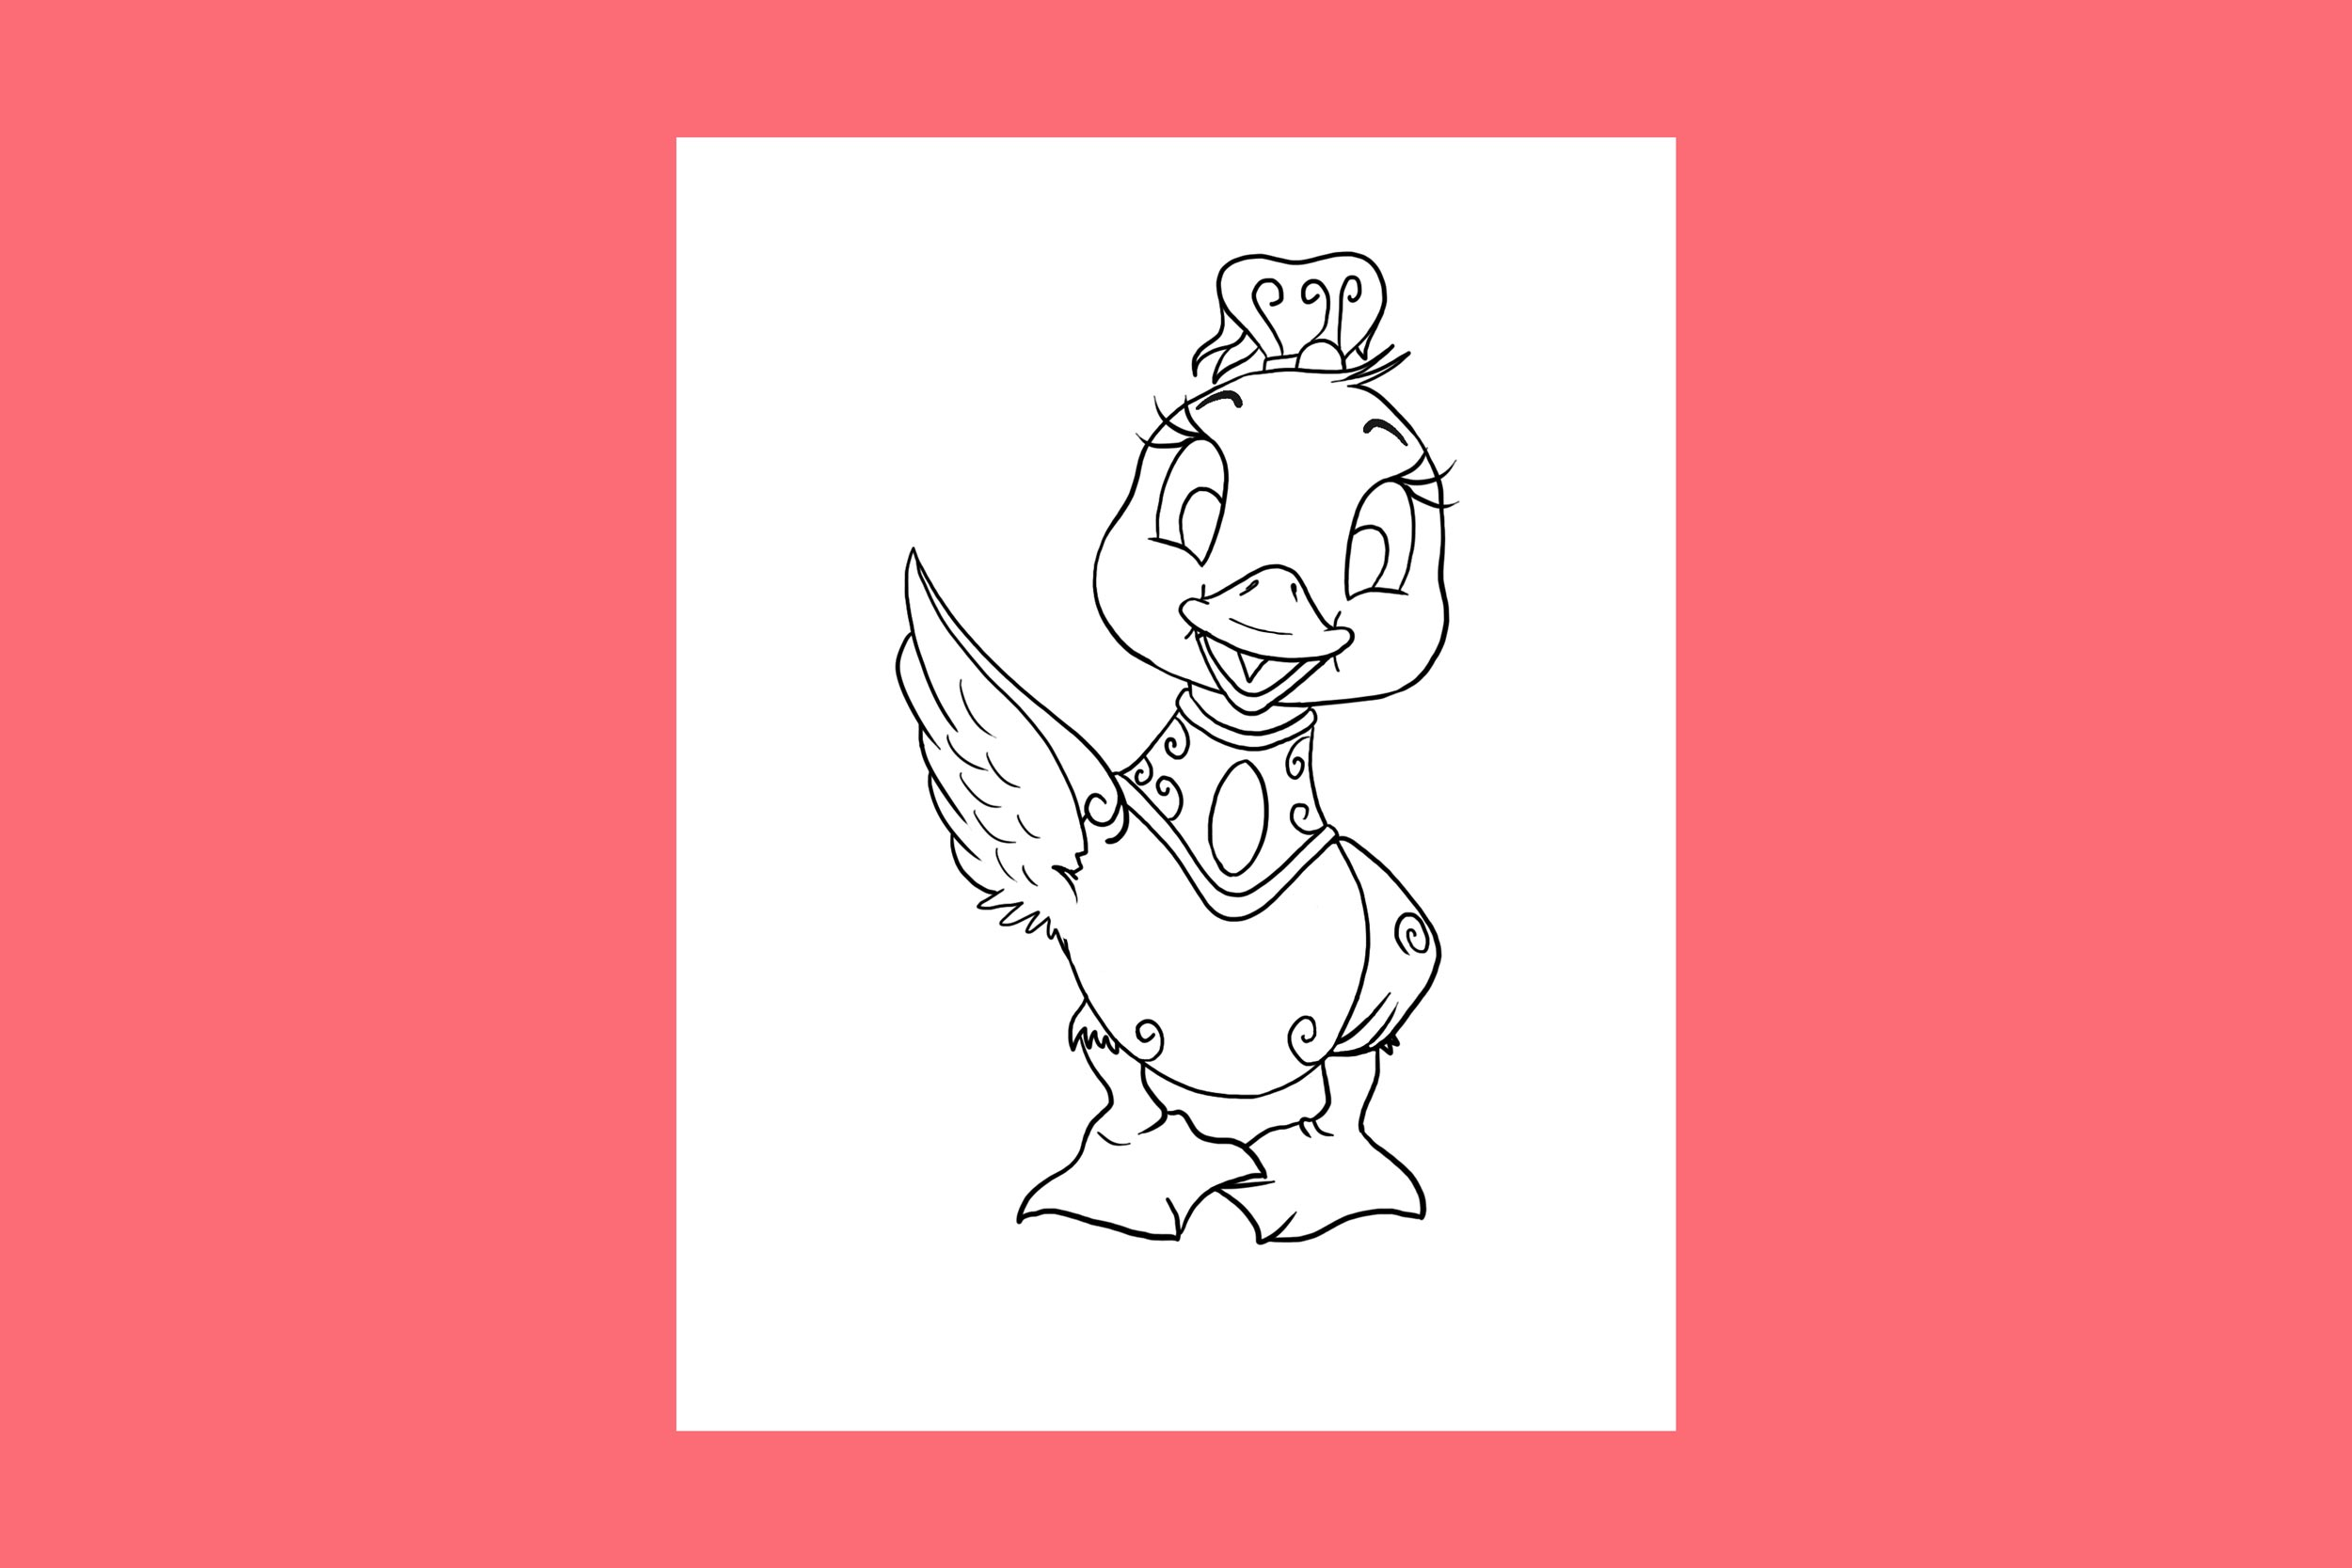 journey-of-puddle-baby-puddle-free-coloring-page.jpg